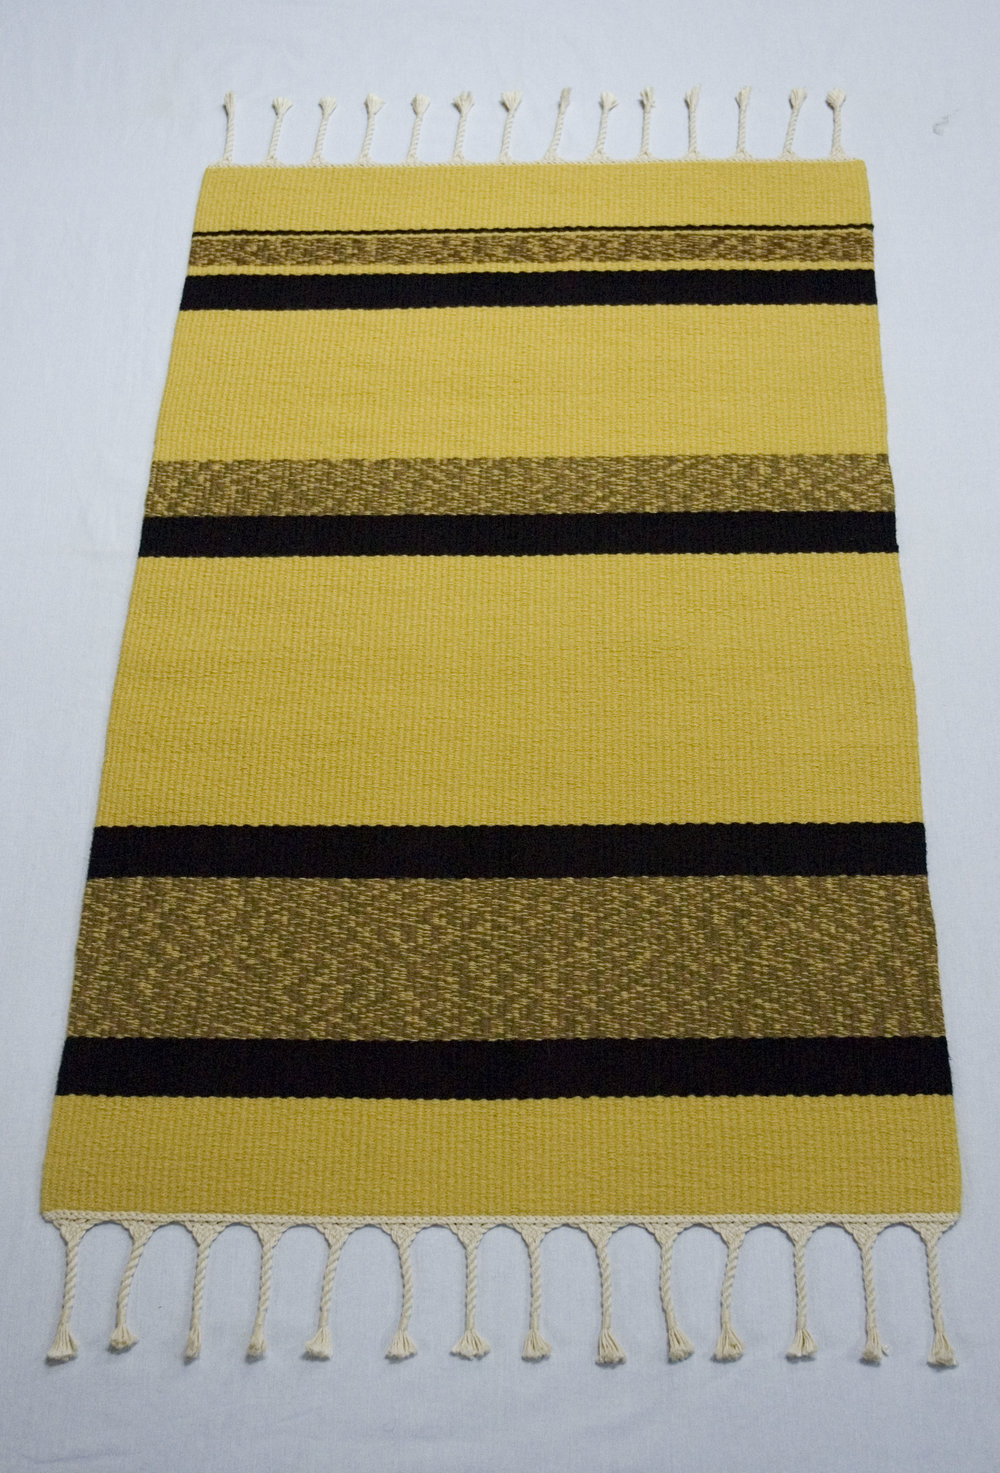 Plain weave rug with yellow and black stripes